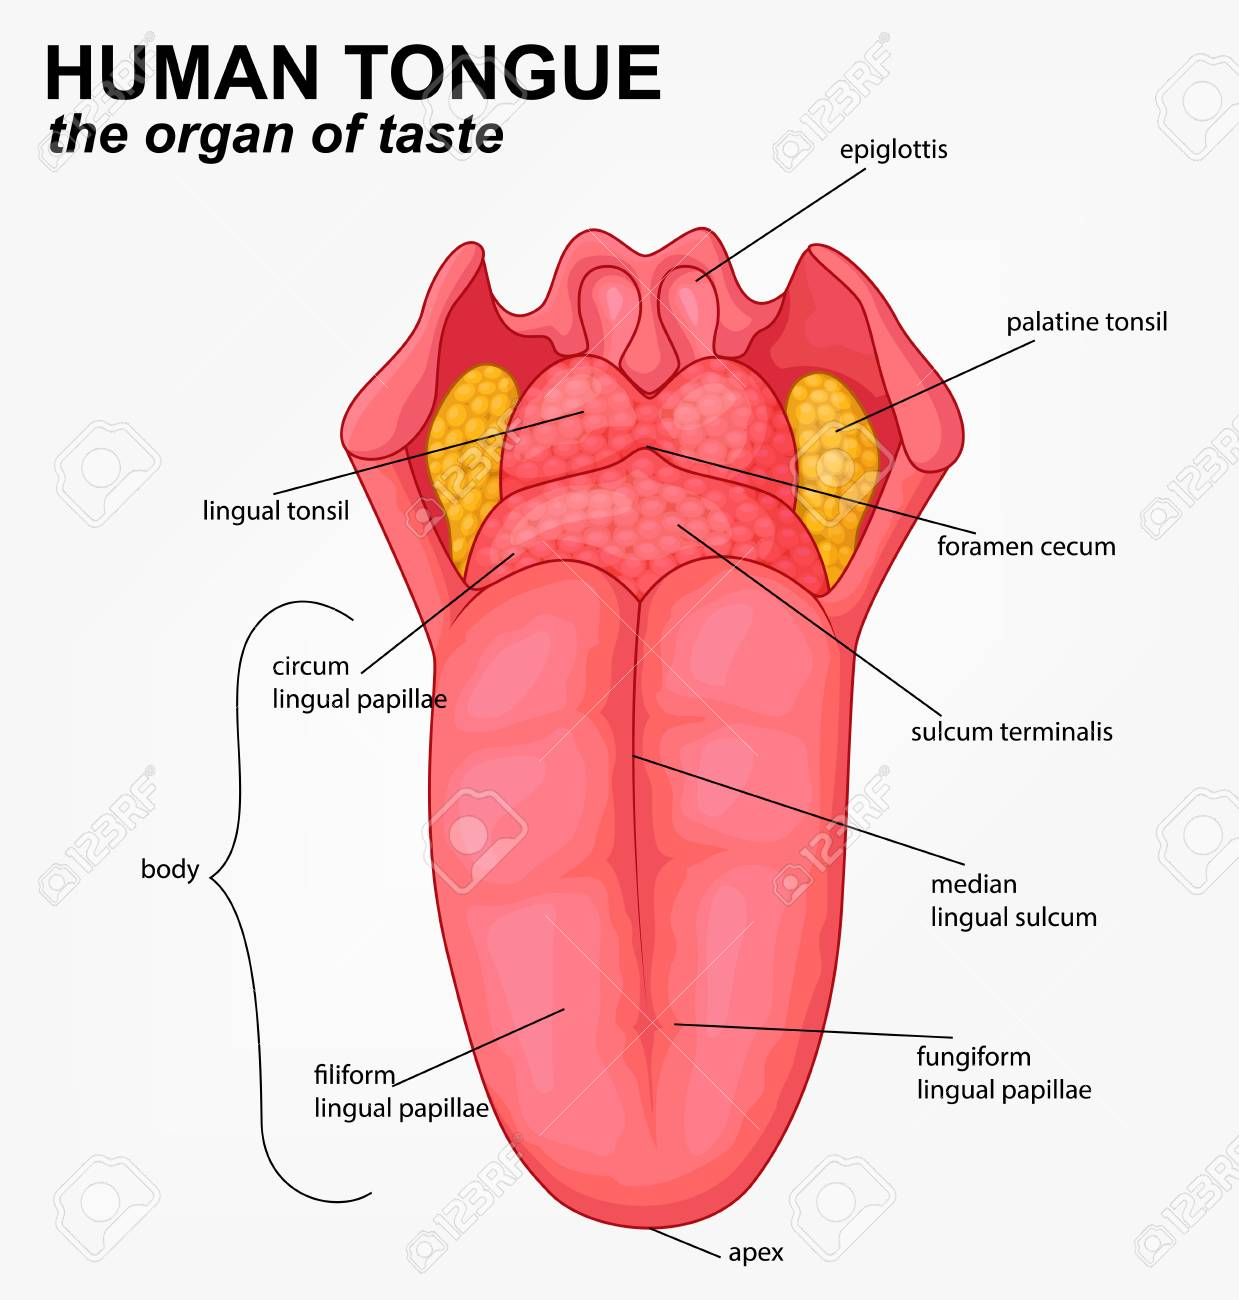 human tongue structure cartoon grade 3 parts of tongue tongue stock illustrations – 42,494